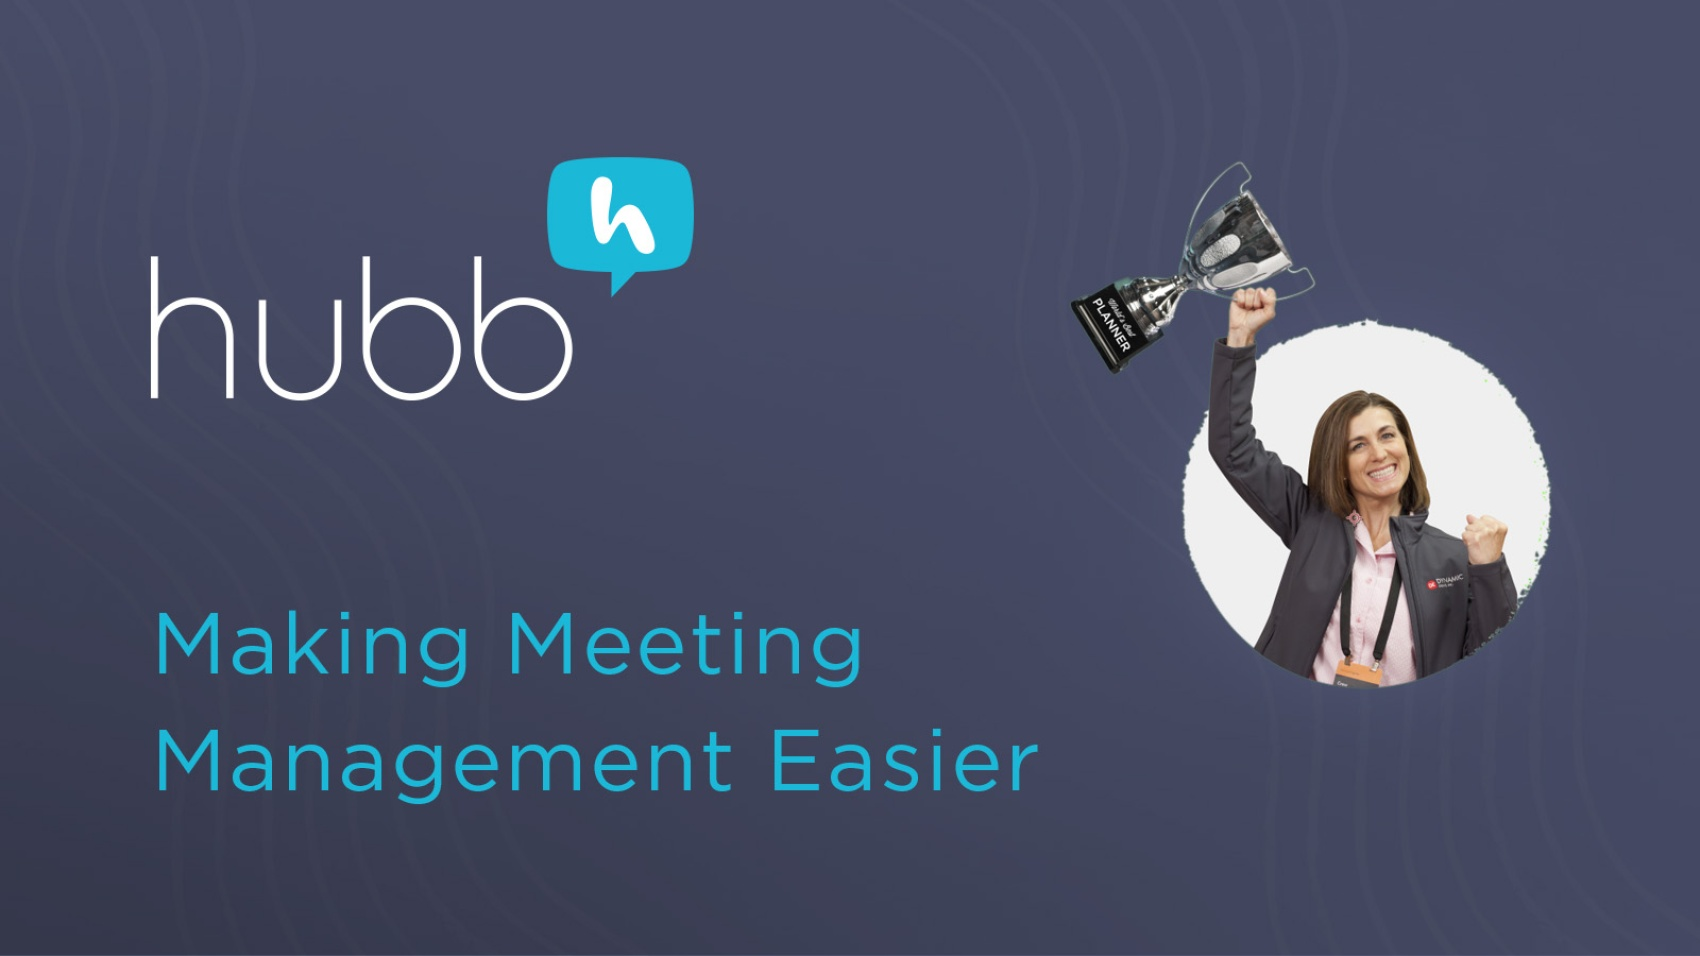 Hubb - Making Meeting Management Easier